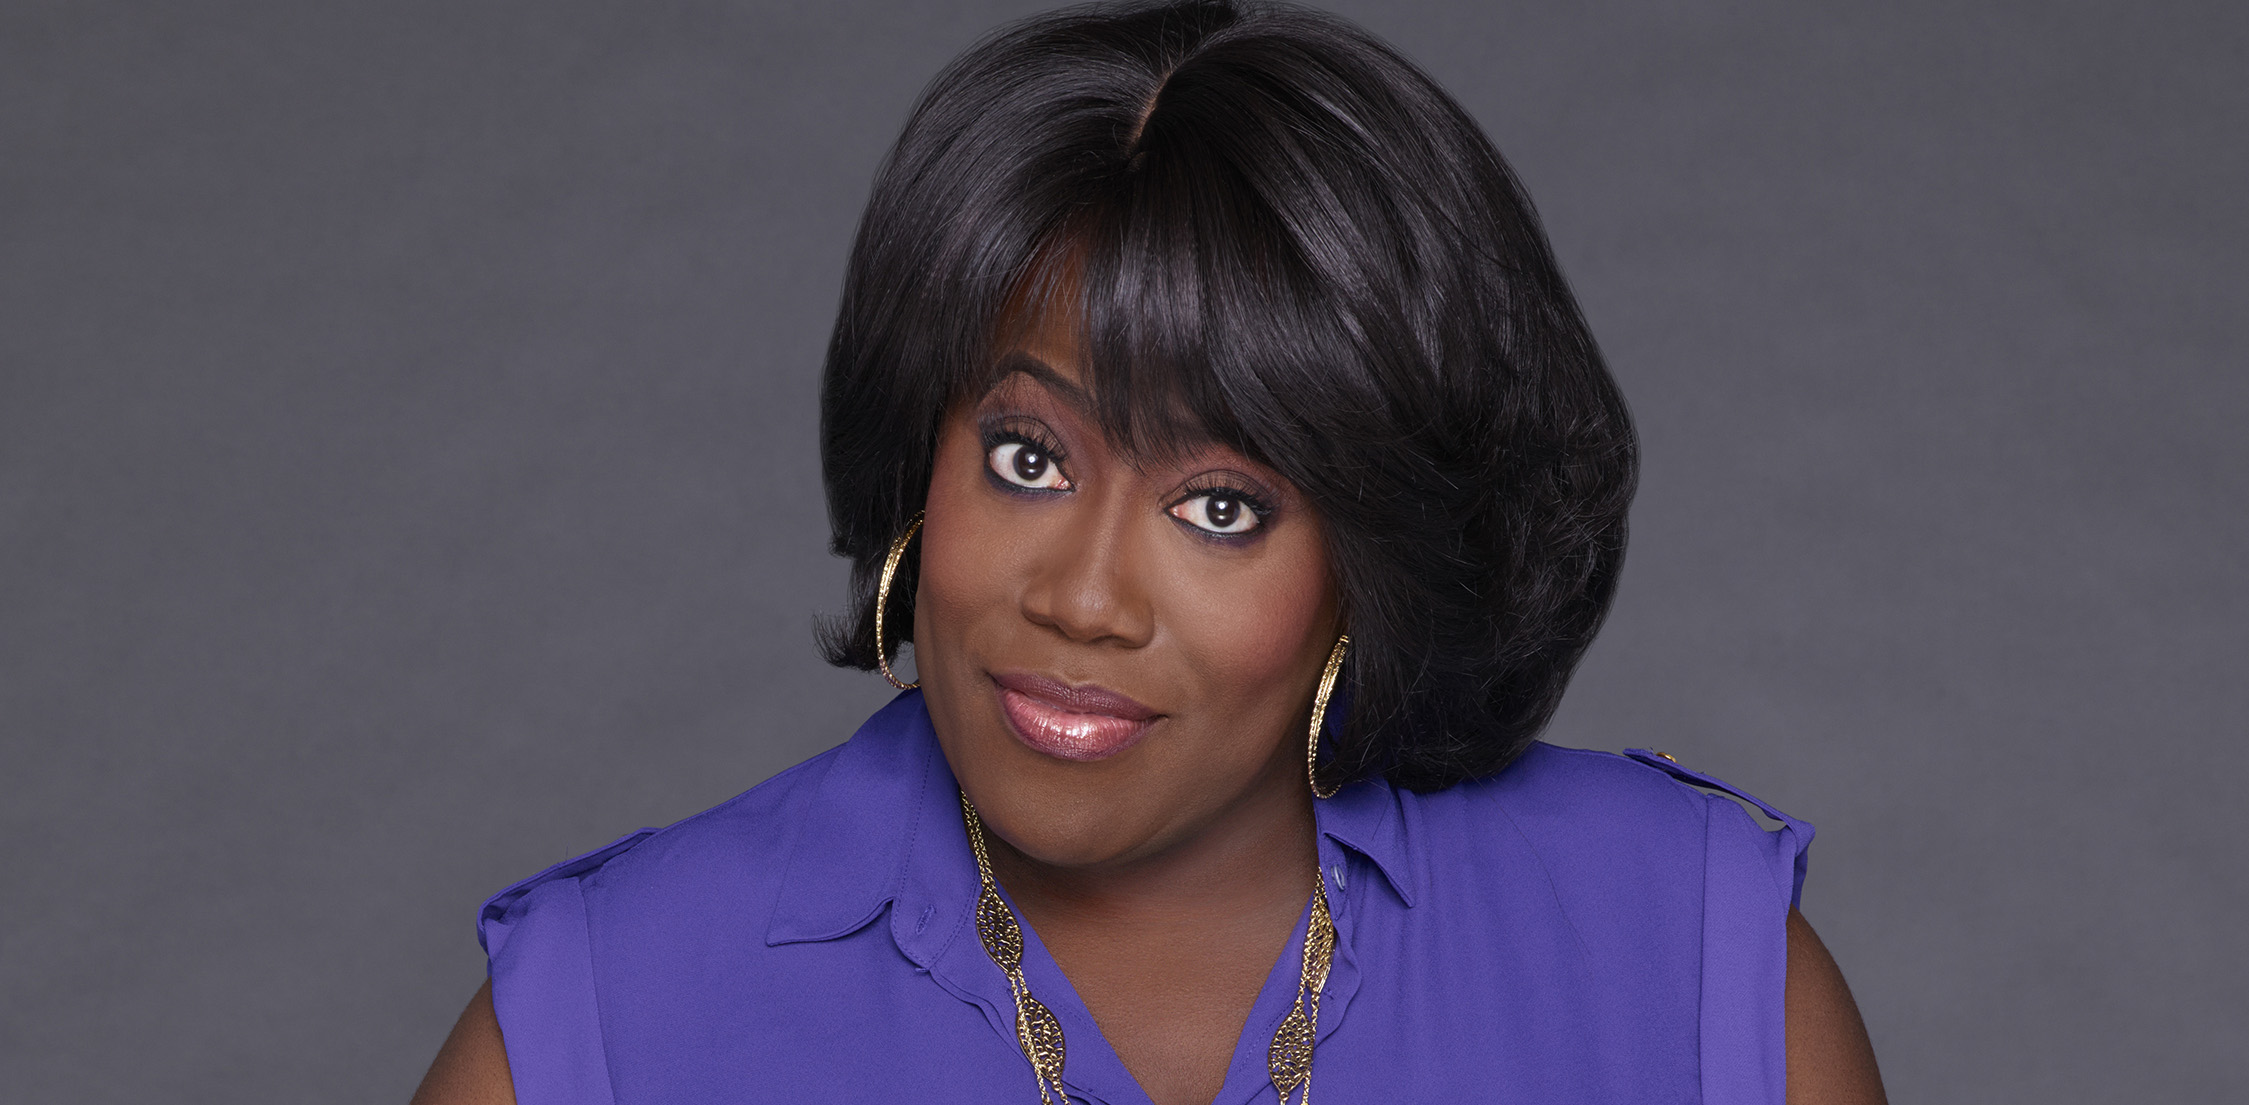 Sheryl Underwood nudes (29 photos), Tits, Leaked, Boobs, swimsuit 2017